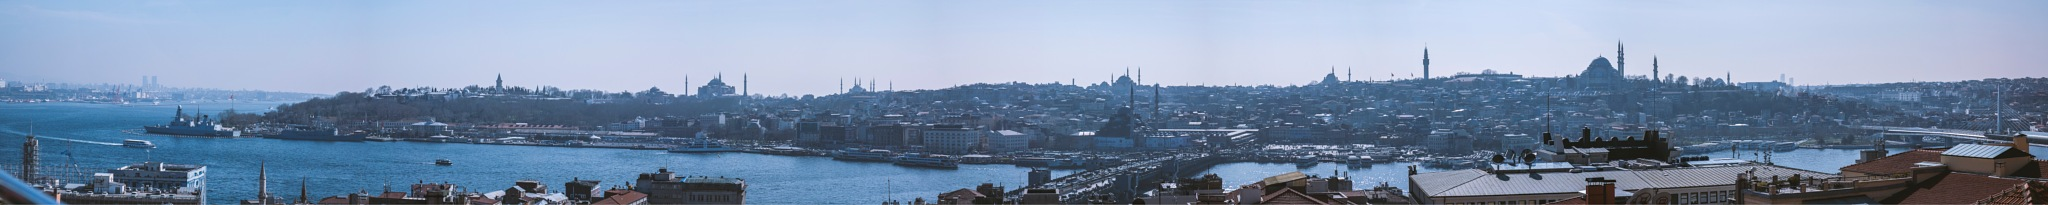 Panorama for Istanbul by Ahmad Alsayed